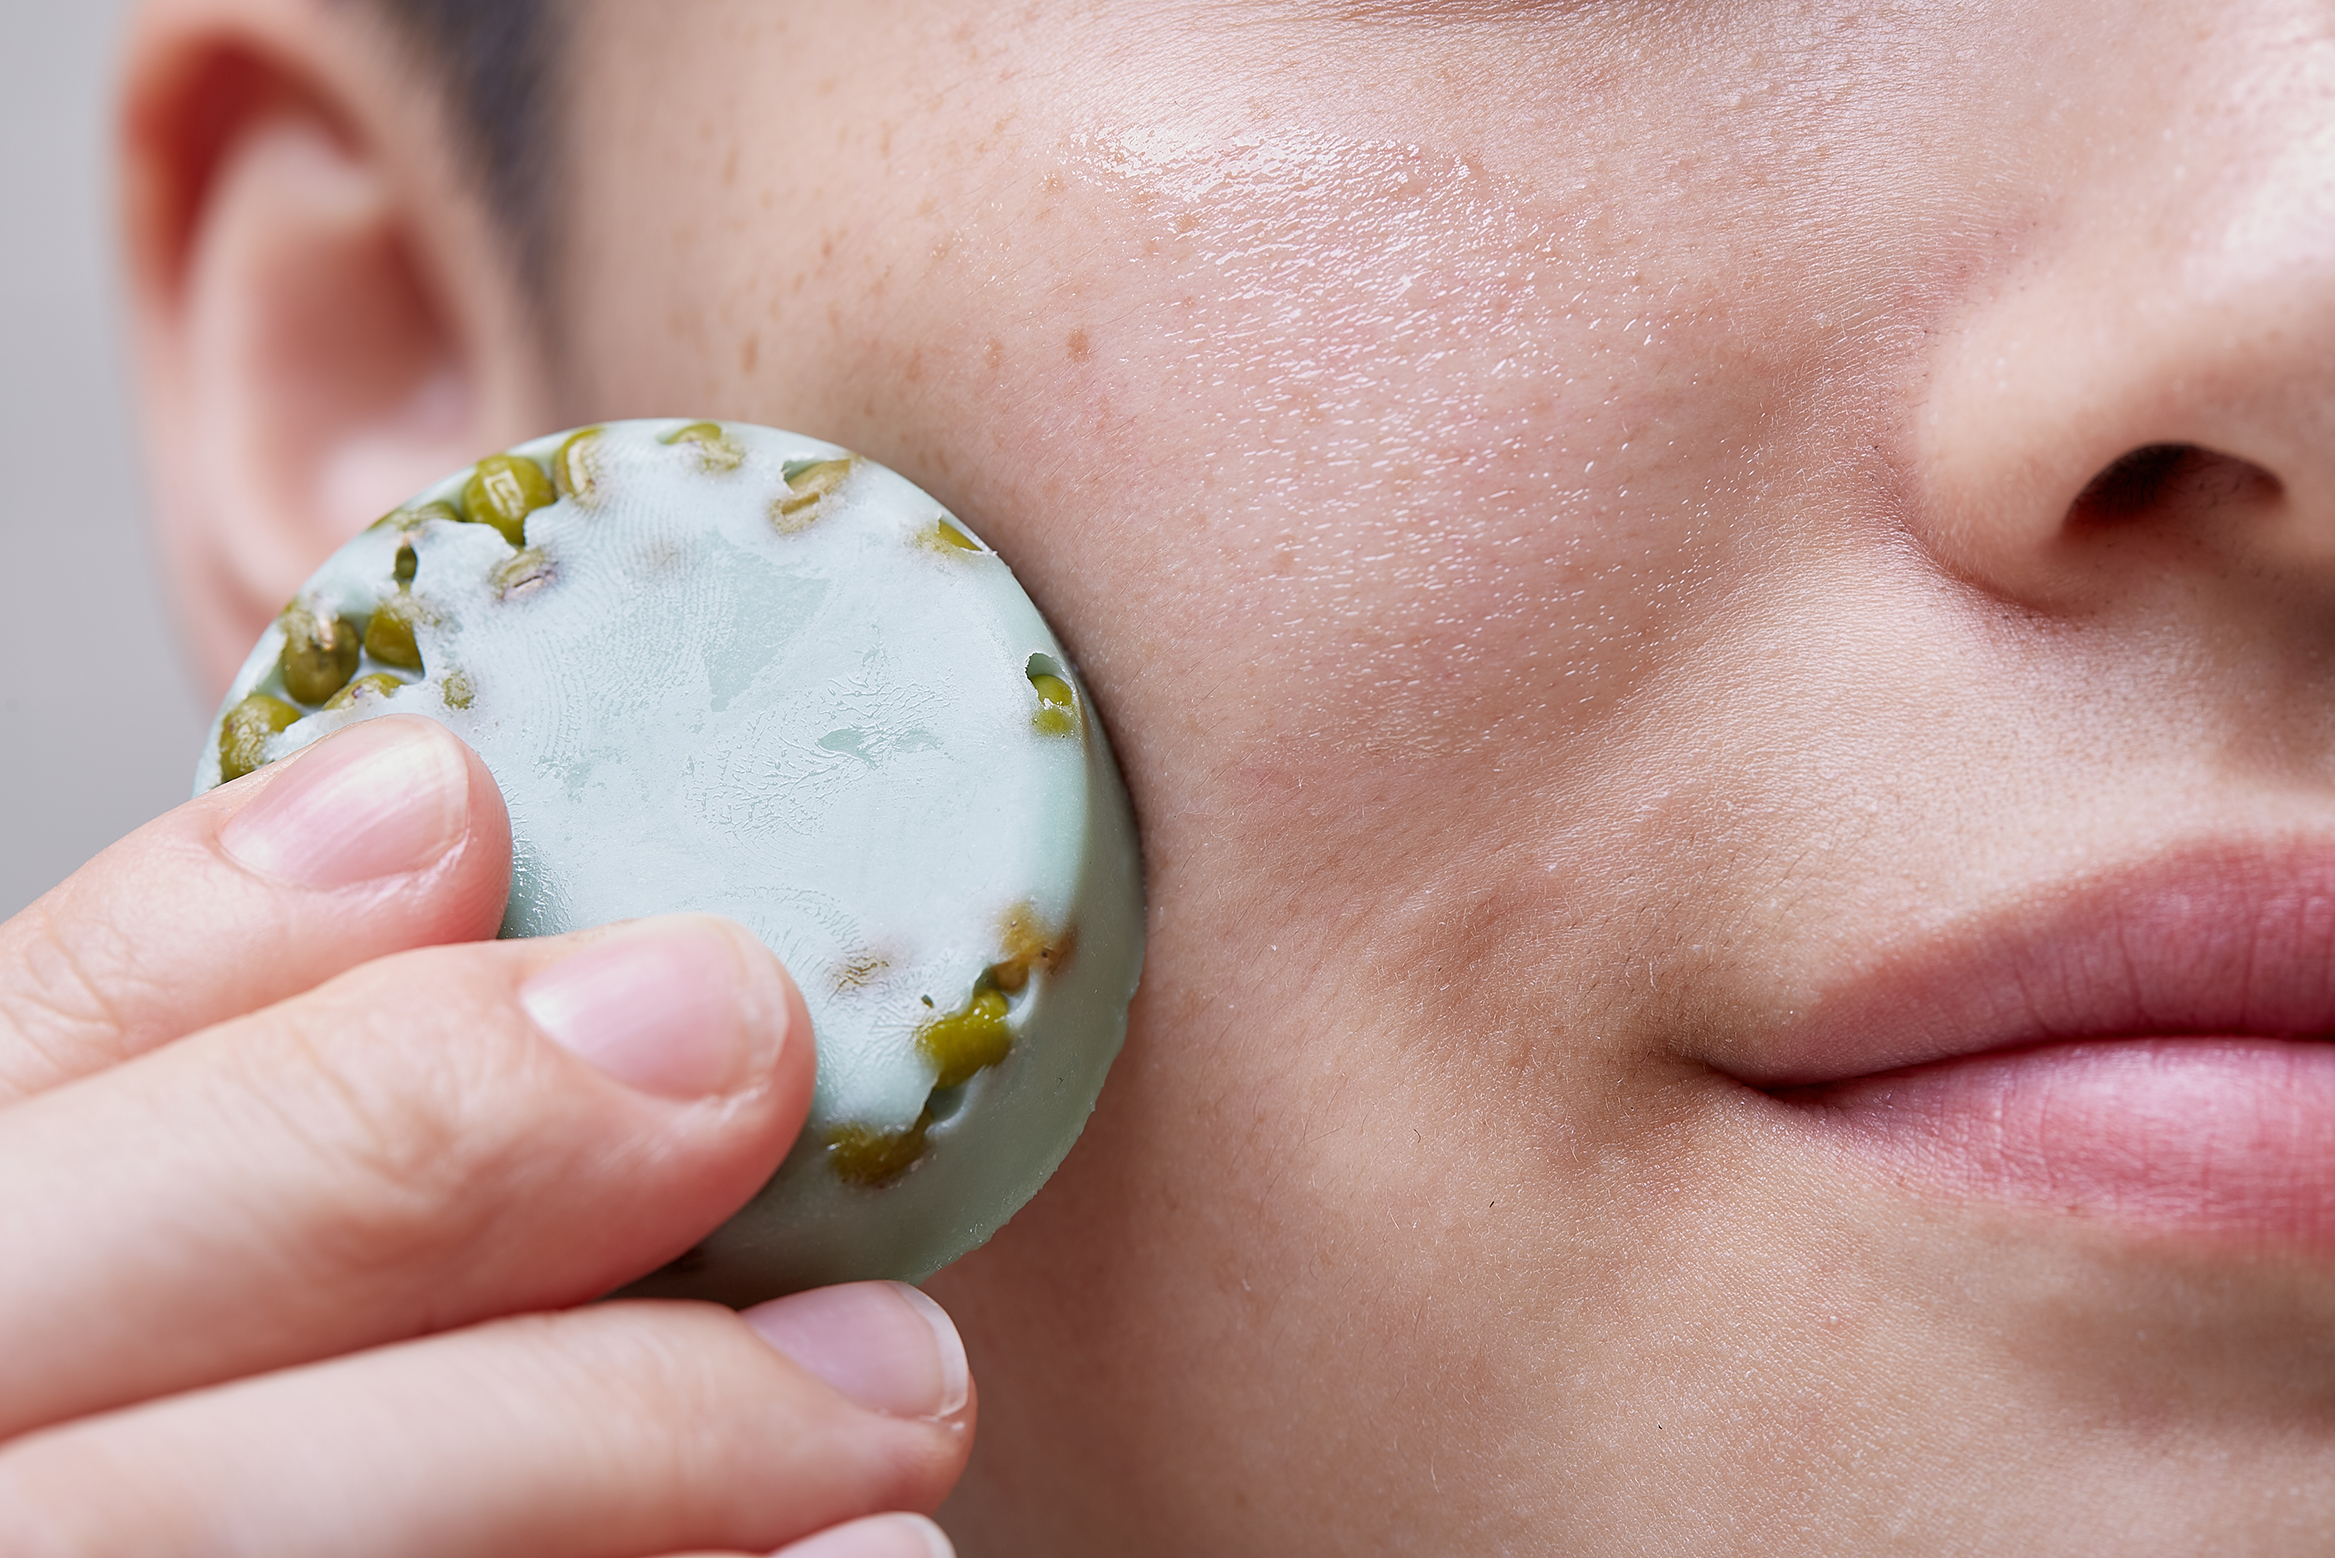 A person applies Jade Roller on their face.